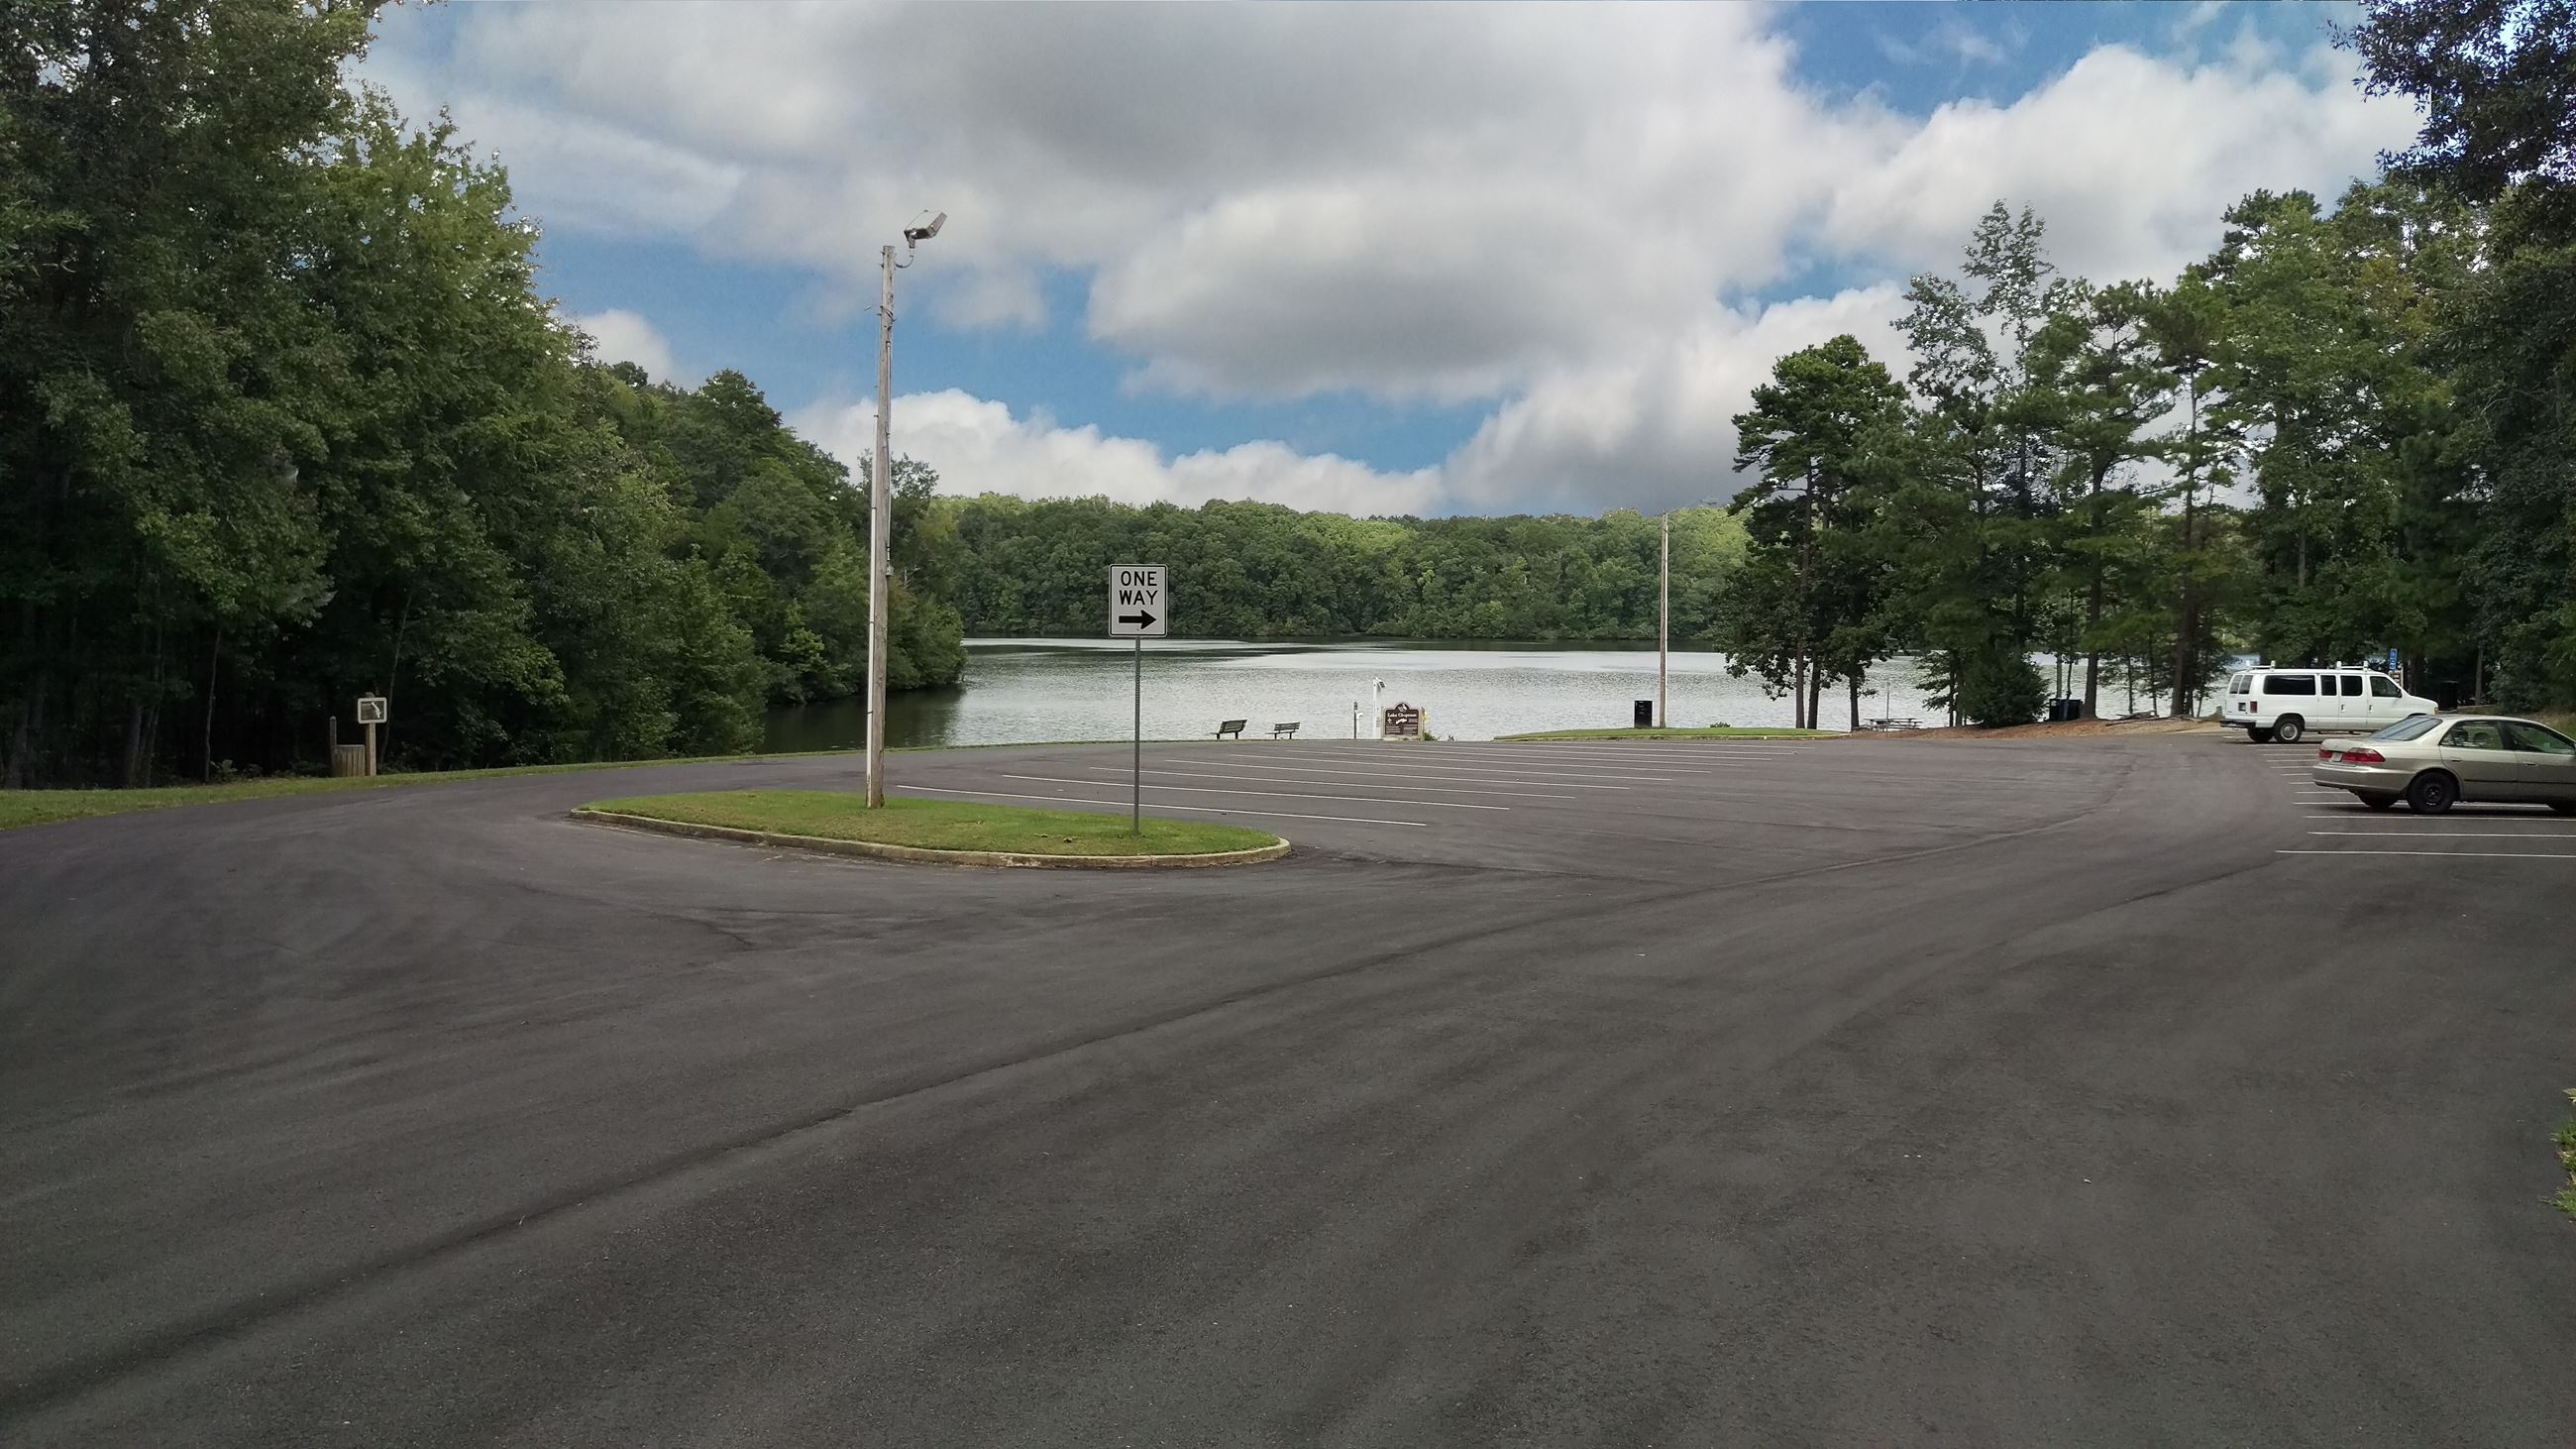 Photo of Parking Lot 12 at the Boat Ramp.